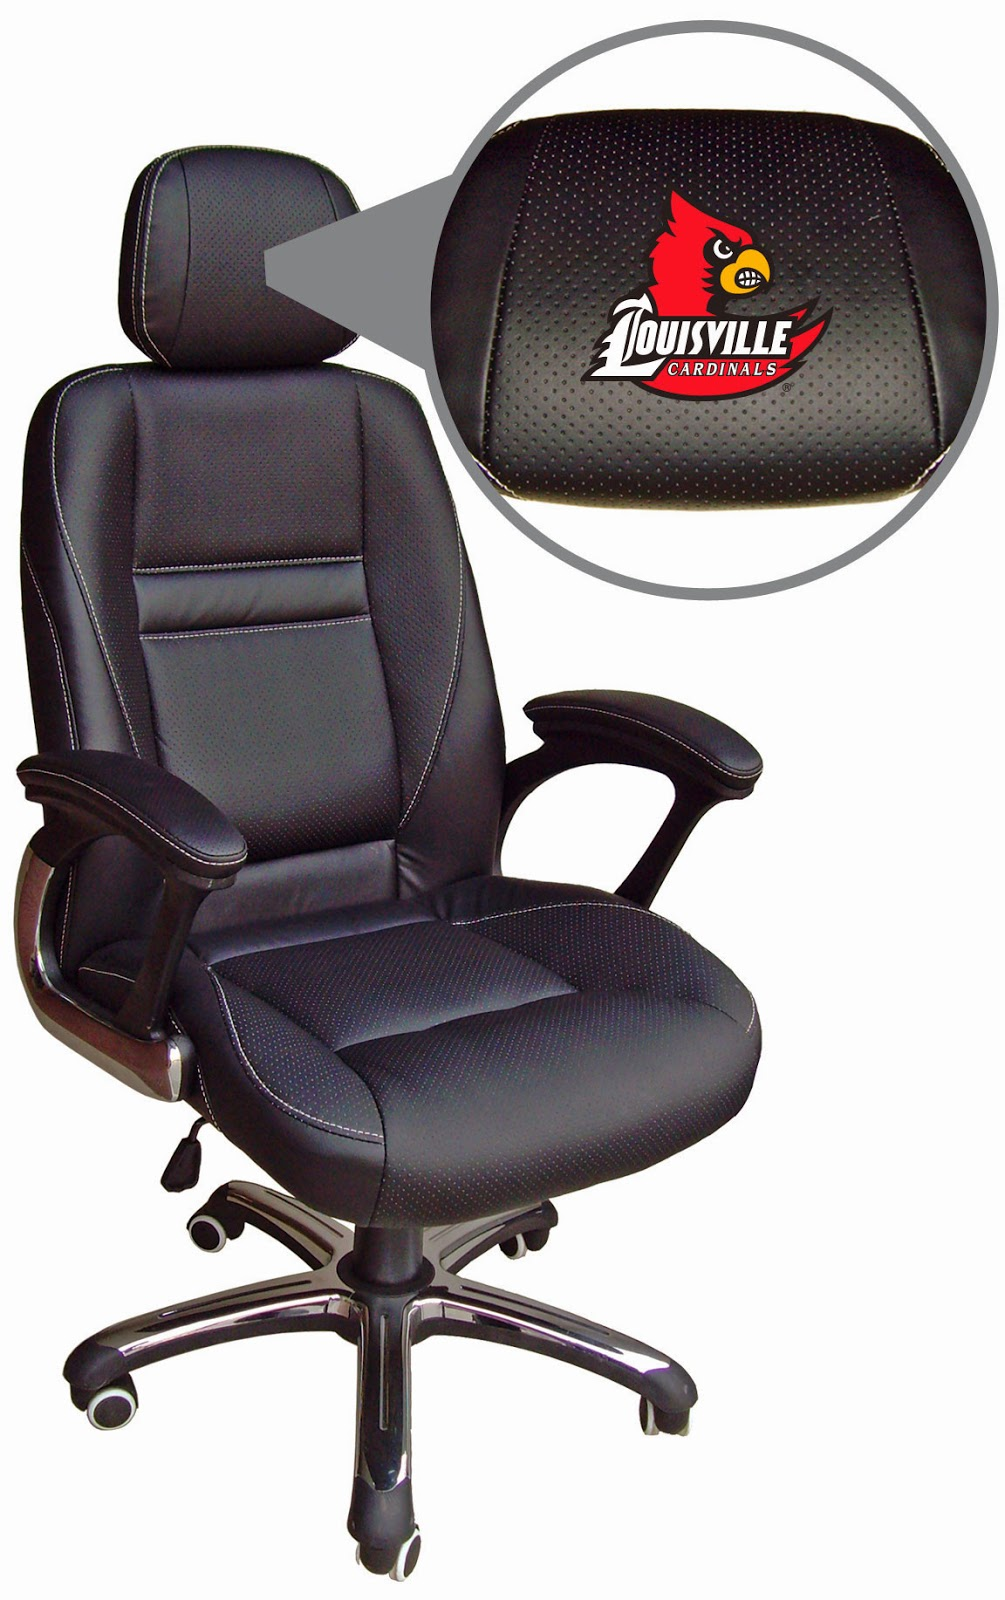 Louisville Cardinals NCAA Office Chair